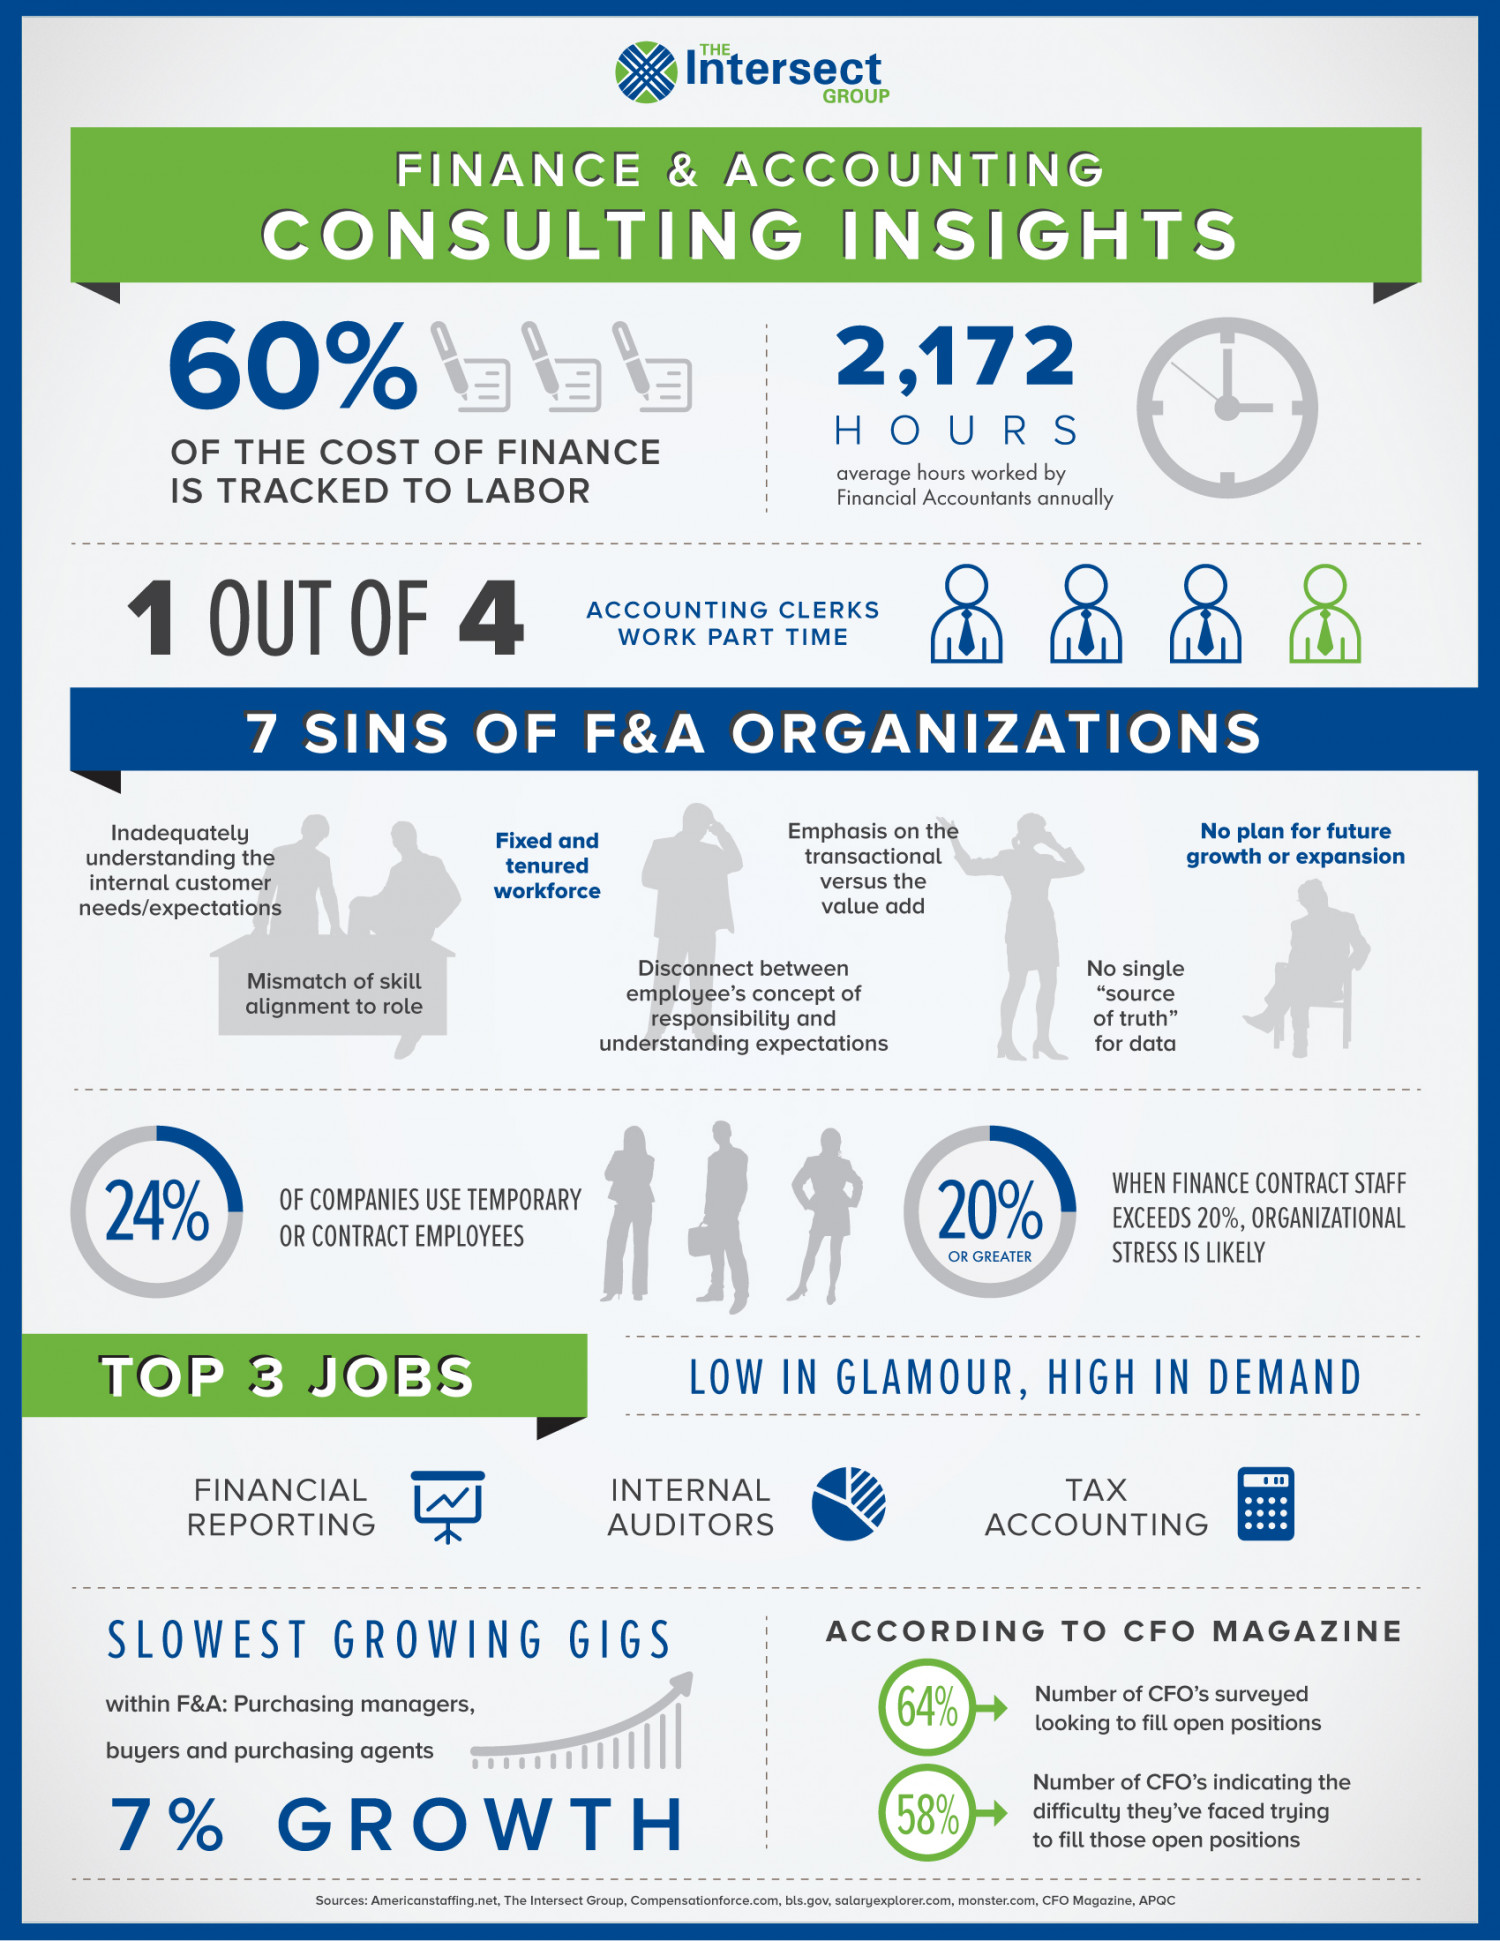 Finance & Accounting Consulting Insights Infographic